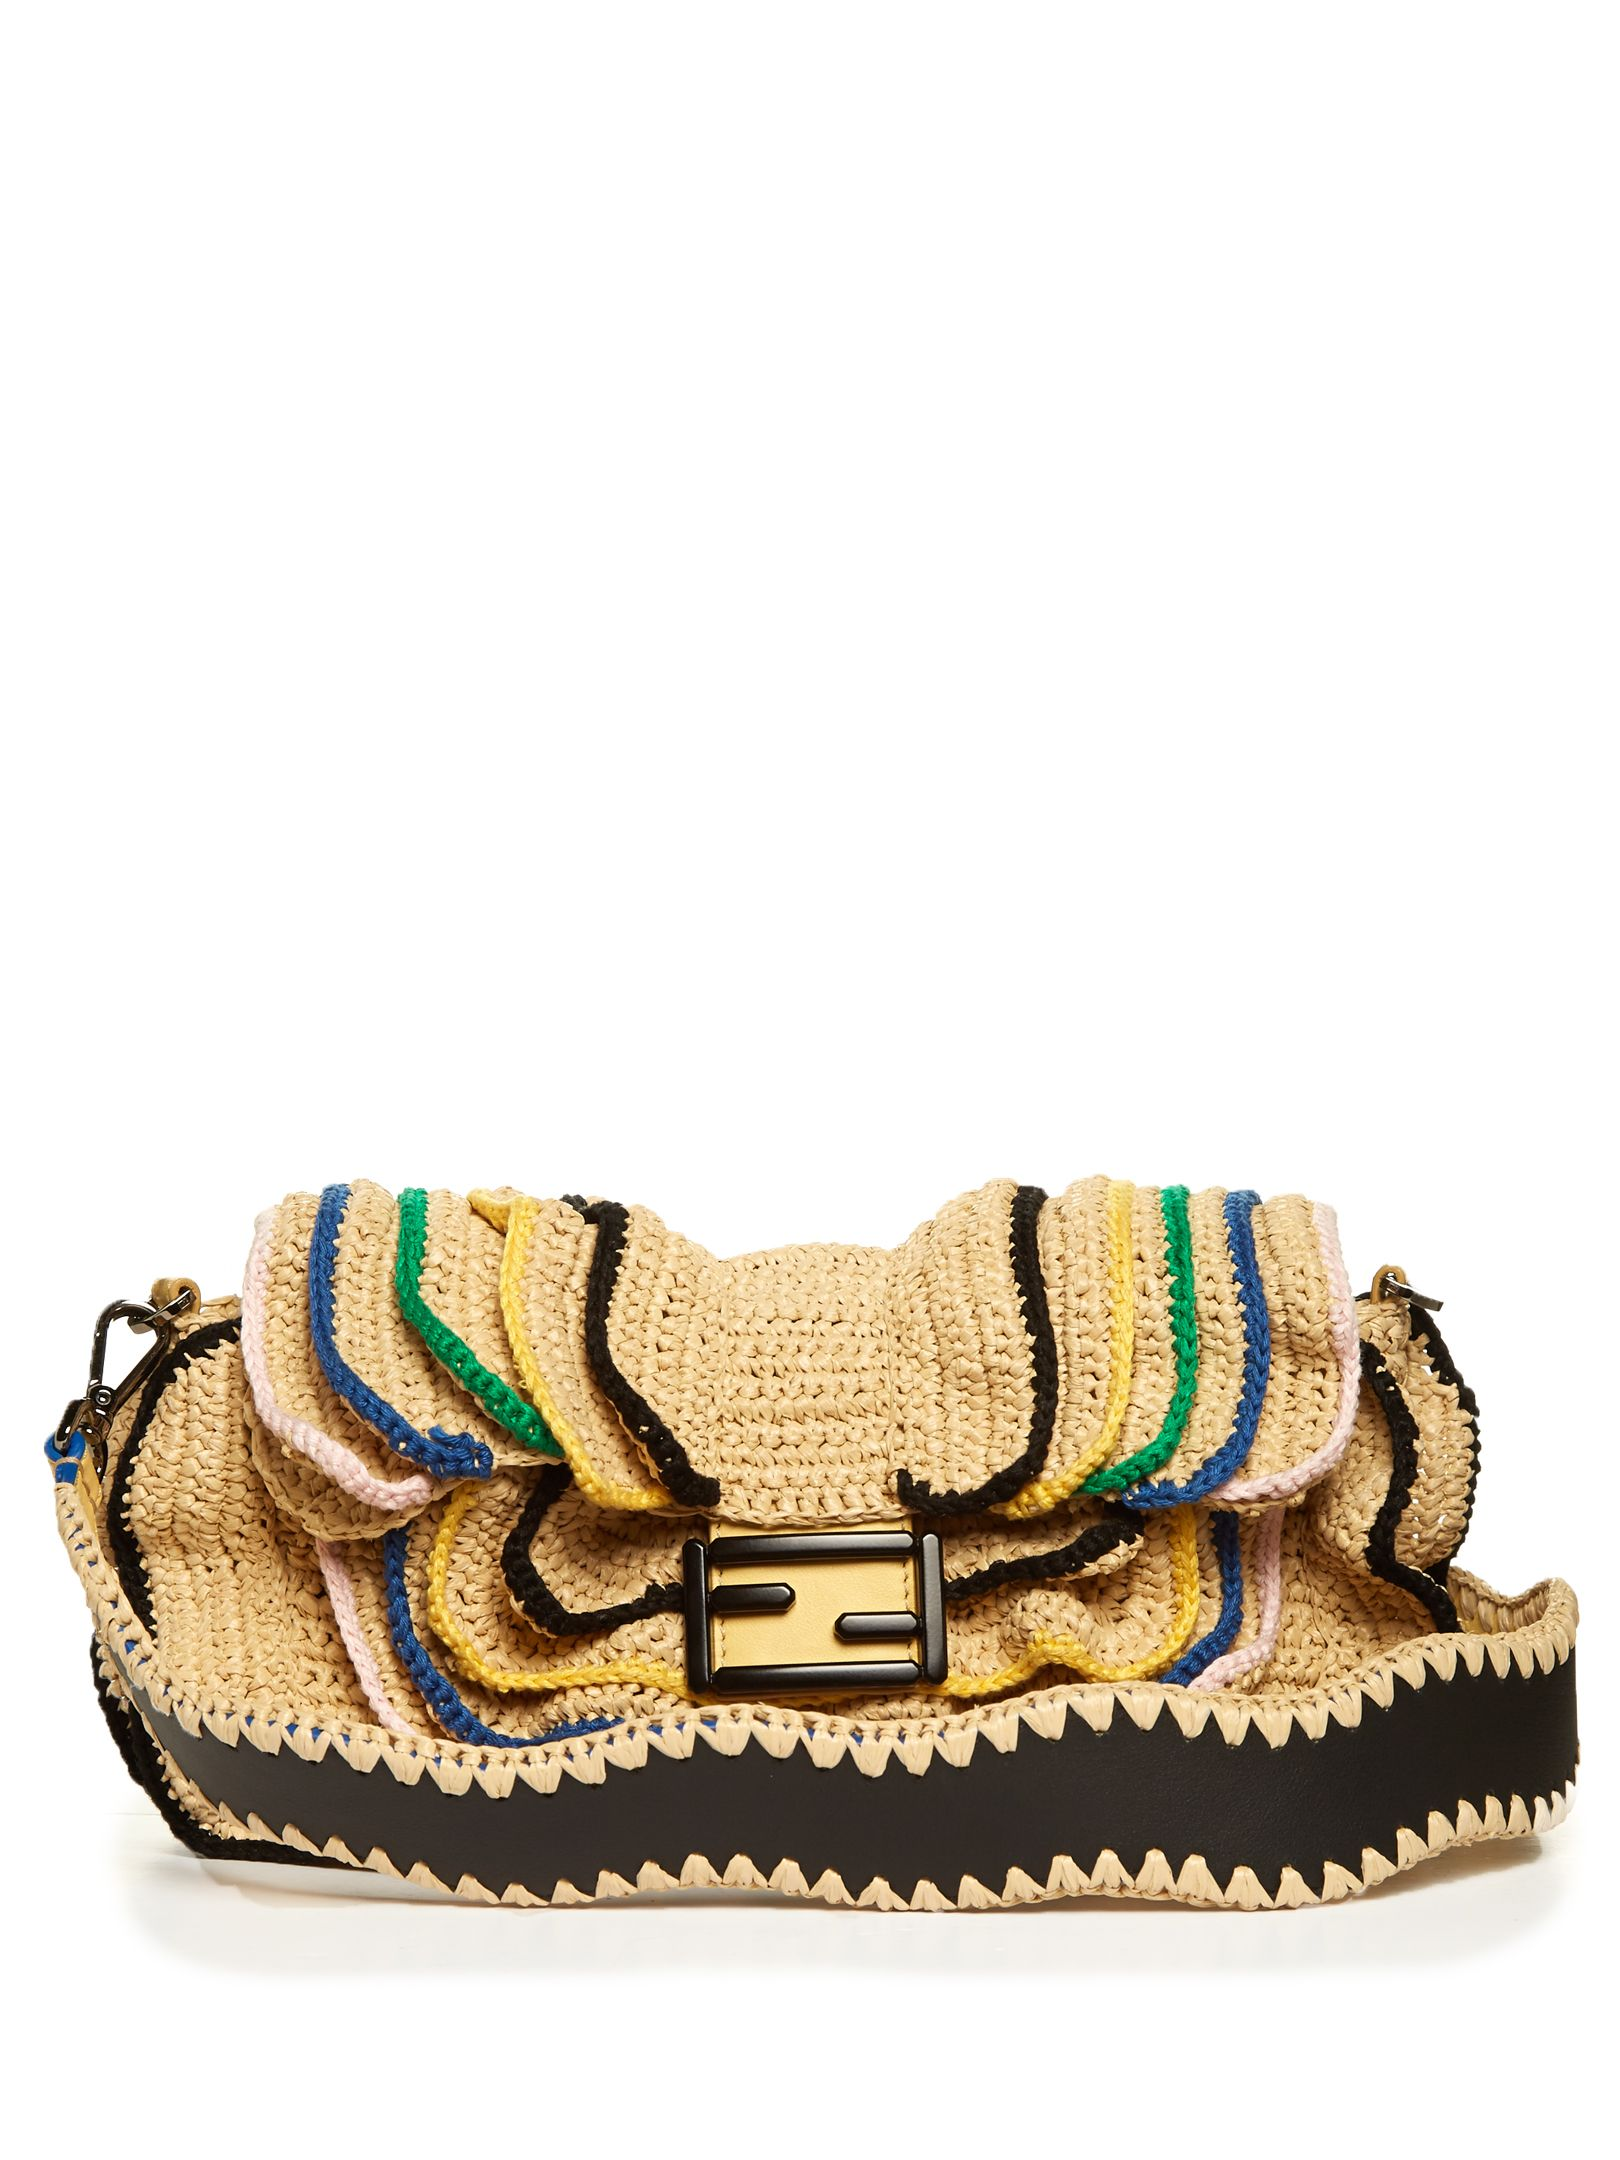 ea3bf54c1c97 Click here to buy Fendi Baguette Wave raffia cross-body bag at  MATCHESFASHION.COM